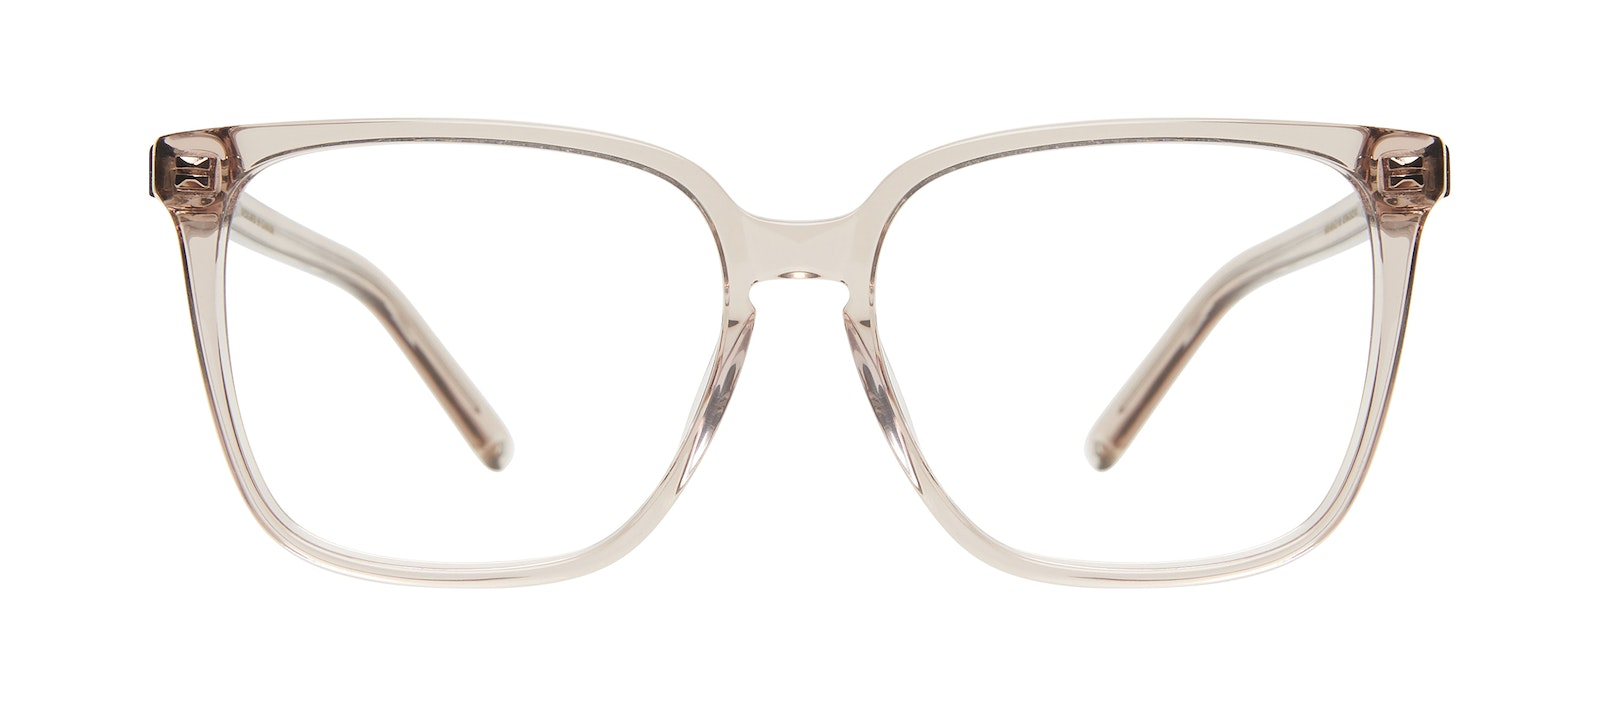 Affordable Fashion Glasses Square Eyeglasses Women Runway Sand Front